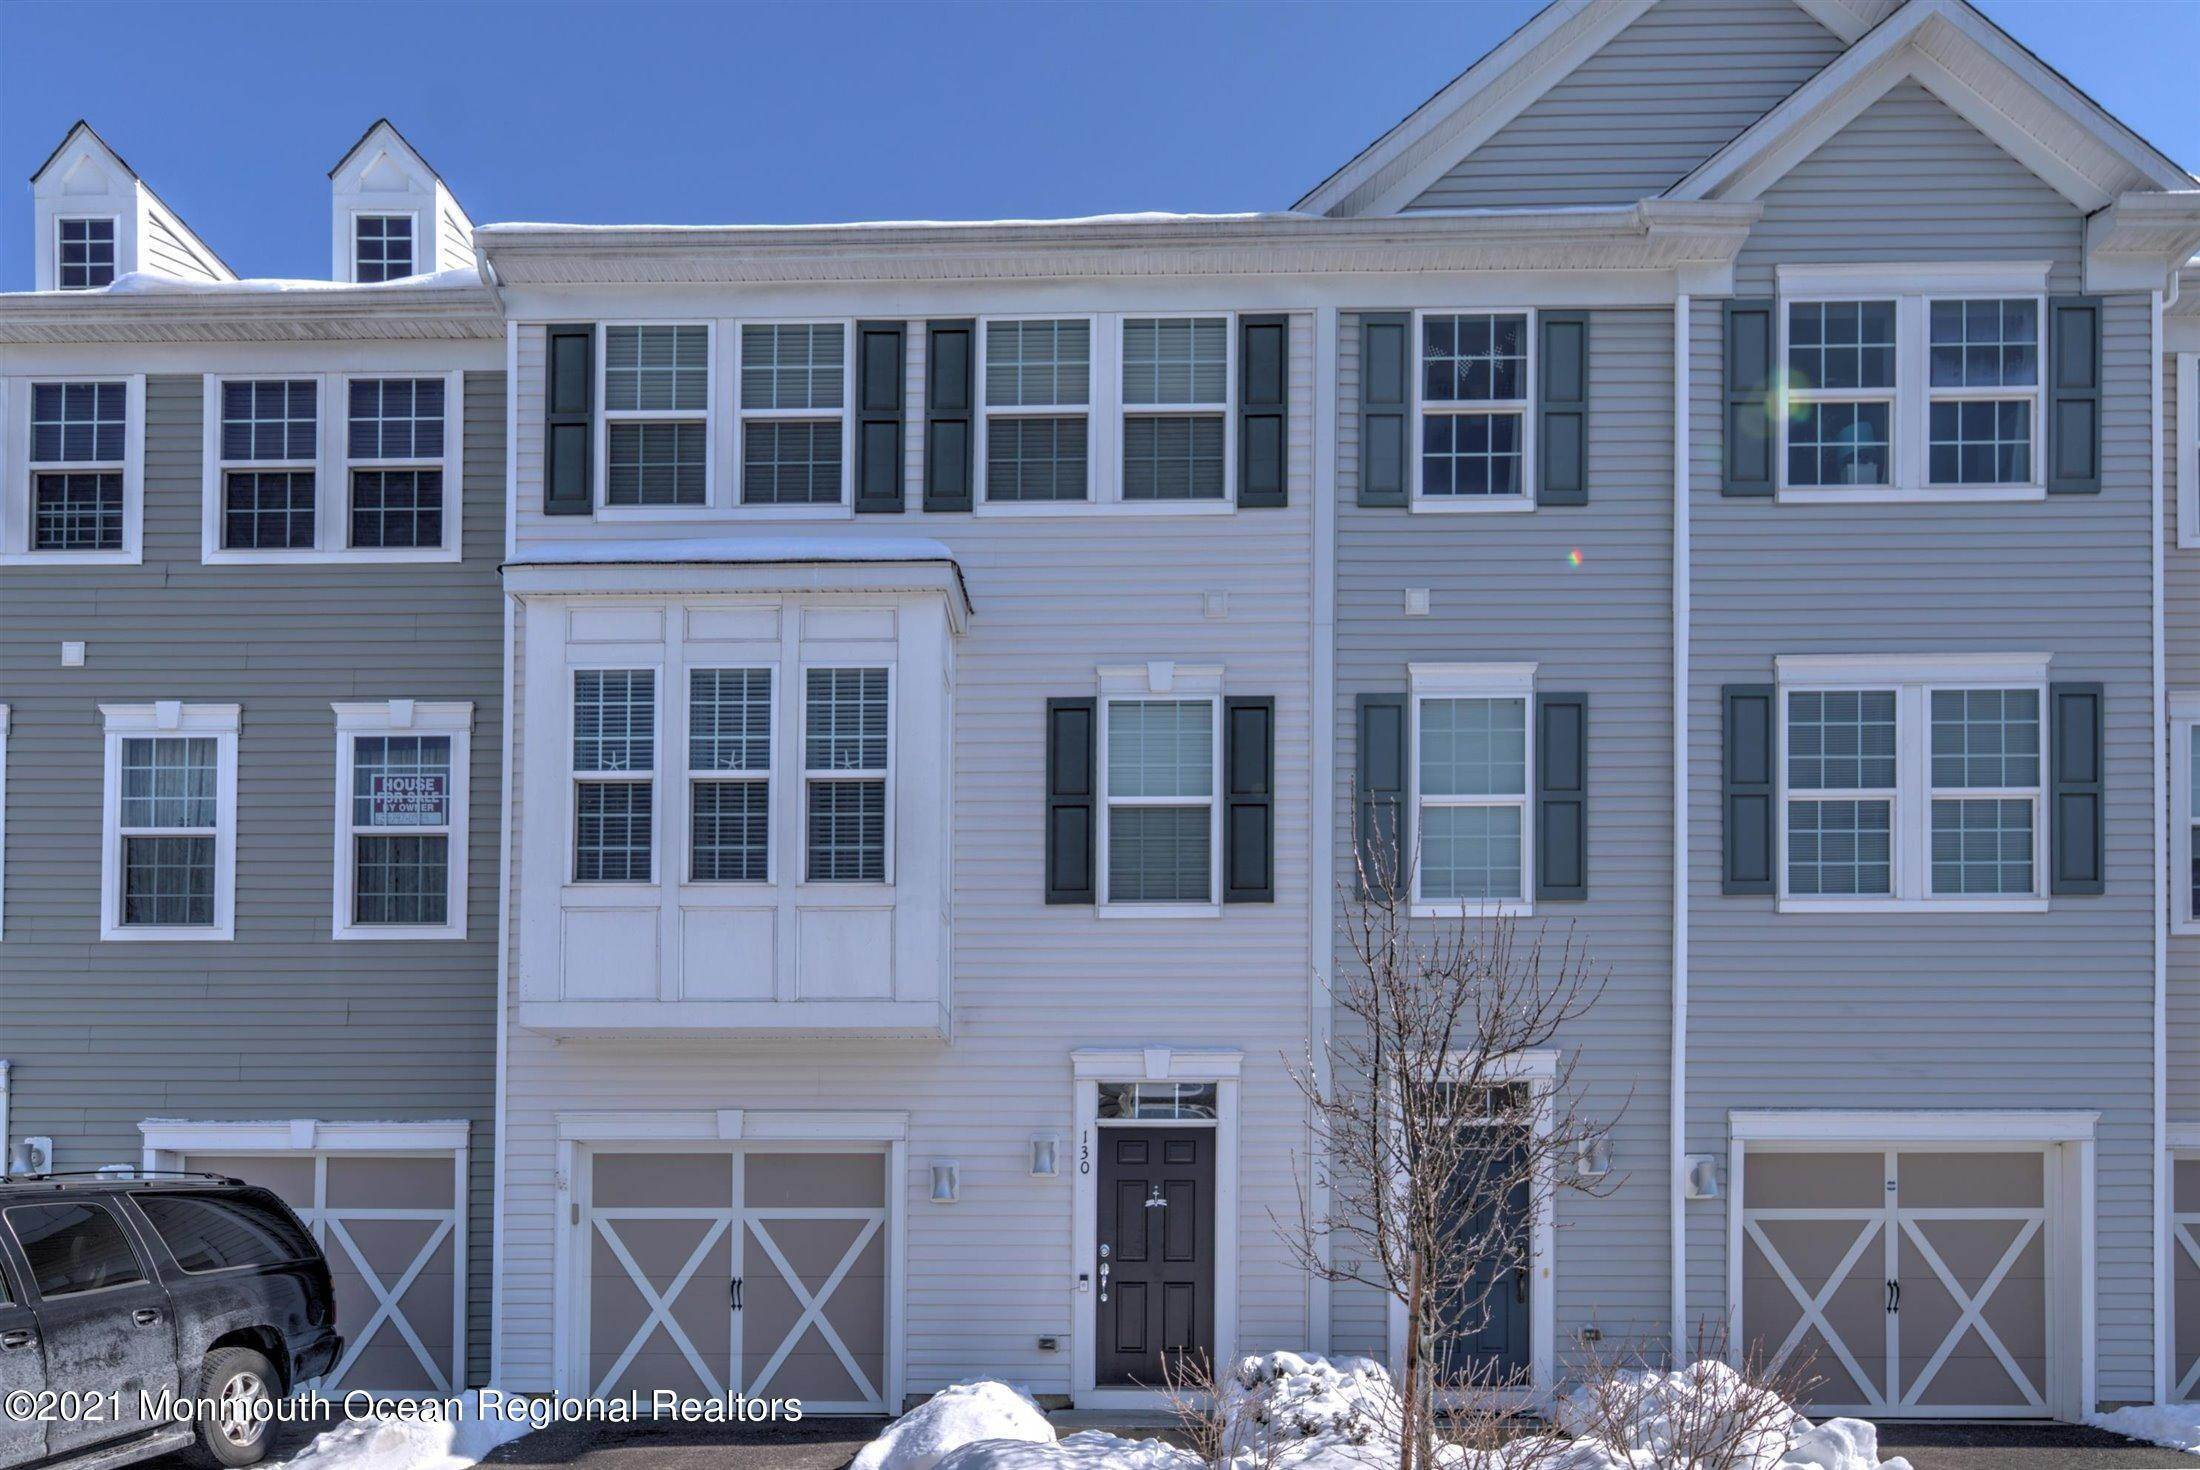 Condominiums for Sale at 130 Beacon Lane Eatontown, New Jersey 07724 United States